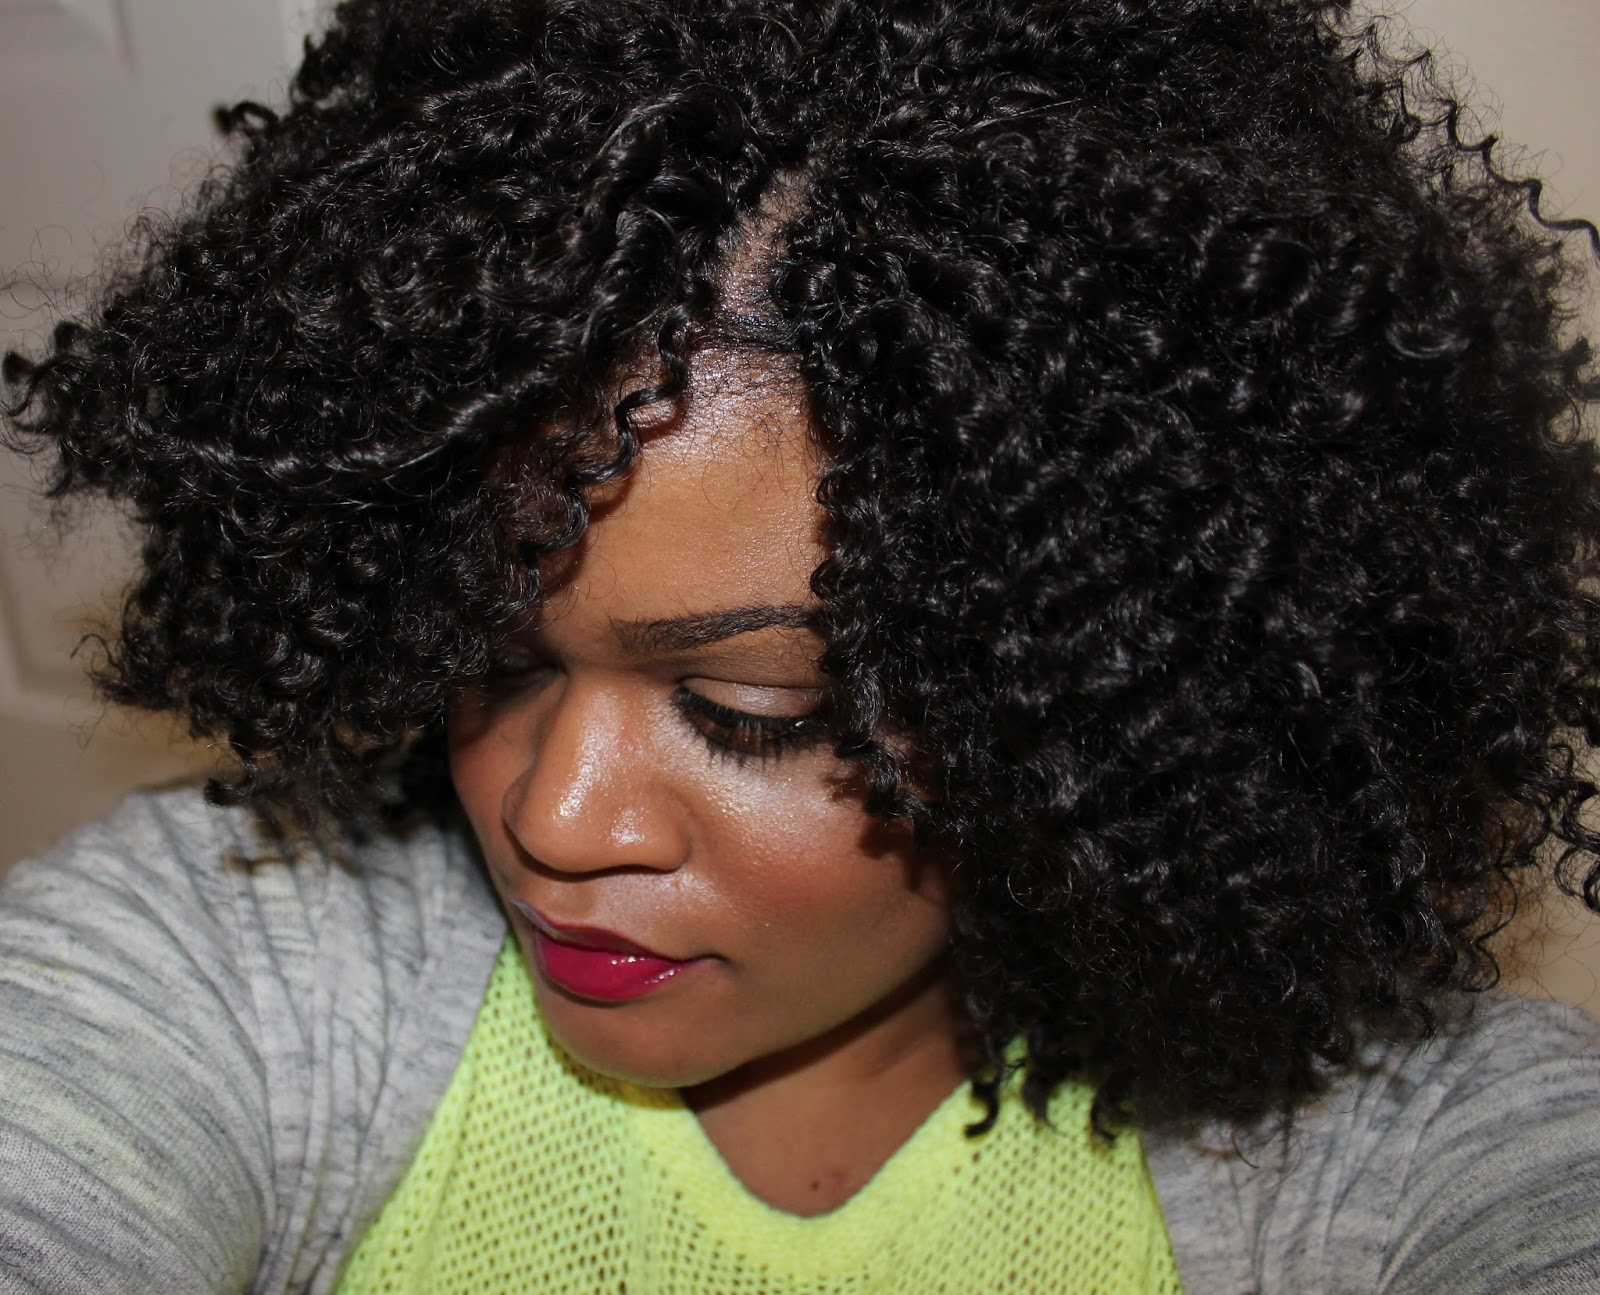 Crochet Hair For Braids : FabEllis: Natural Hair What Are Crochet Braids?